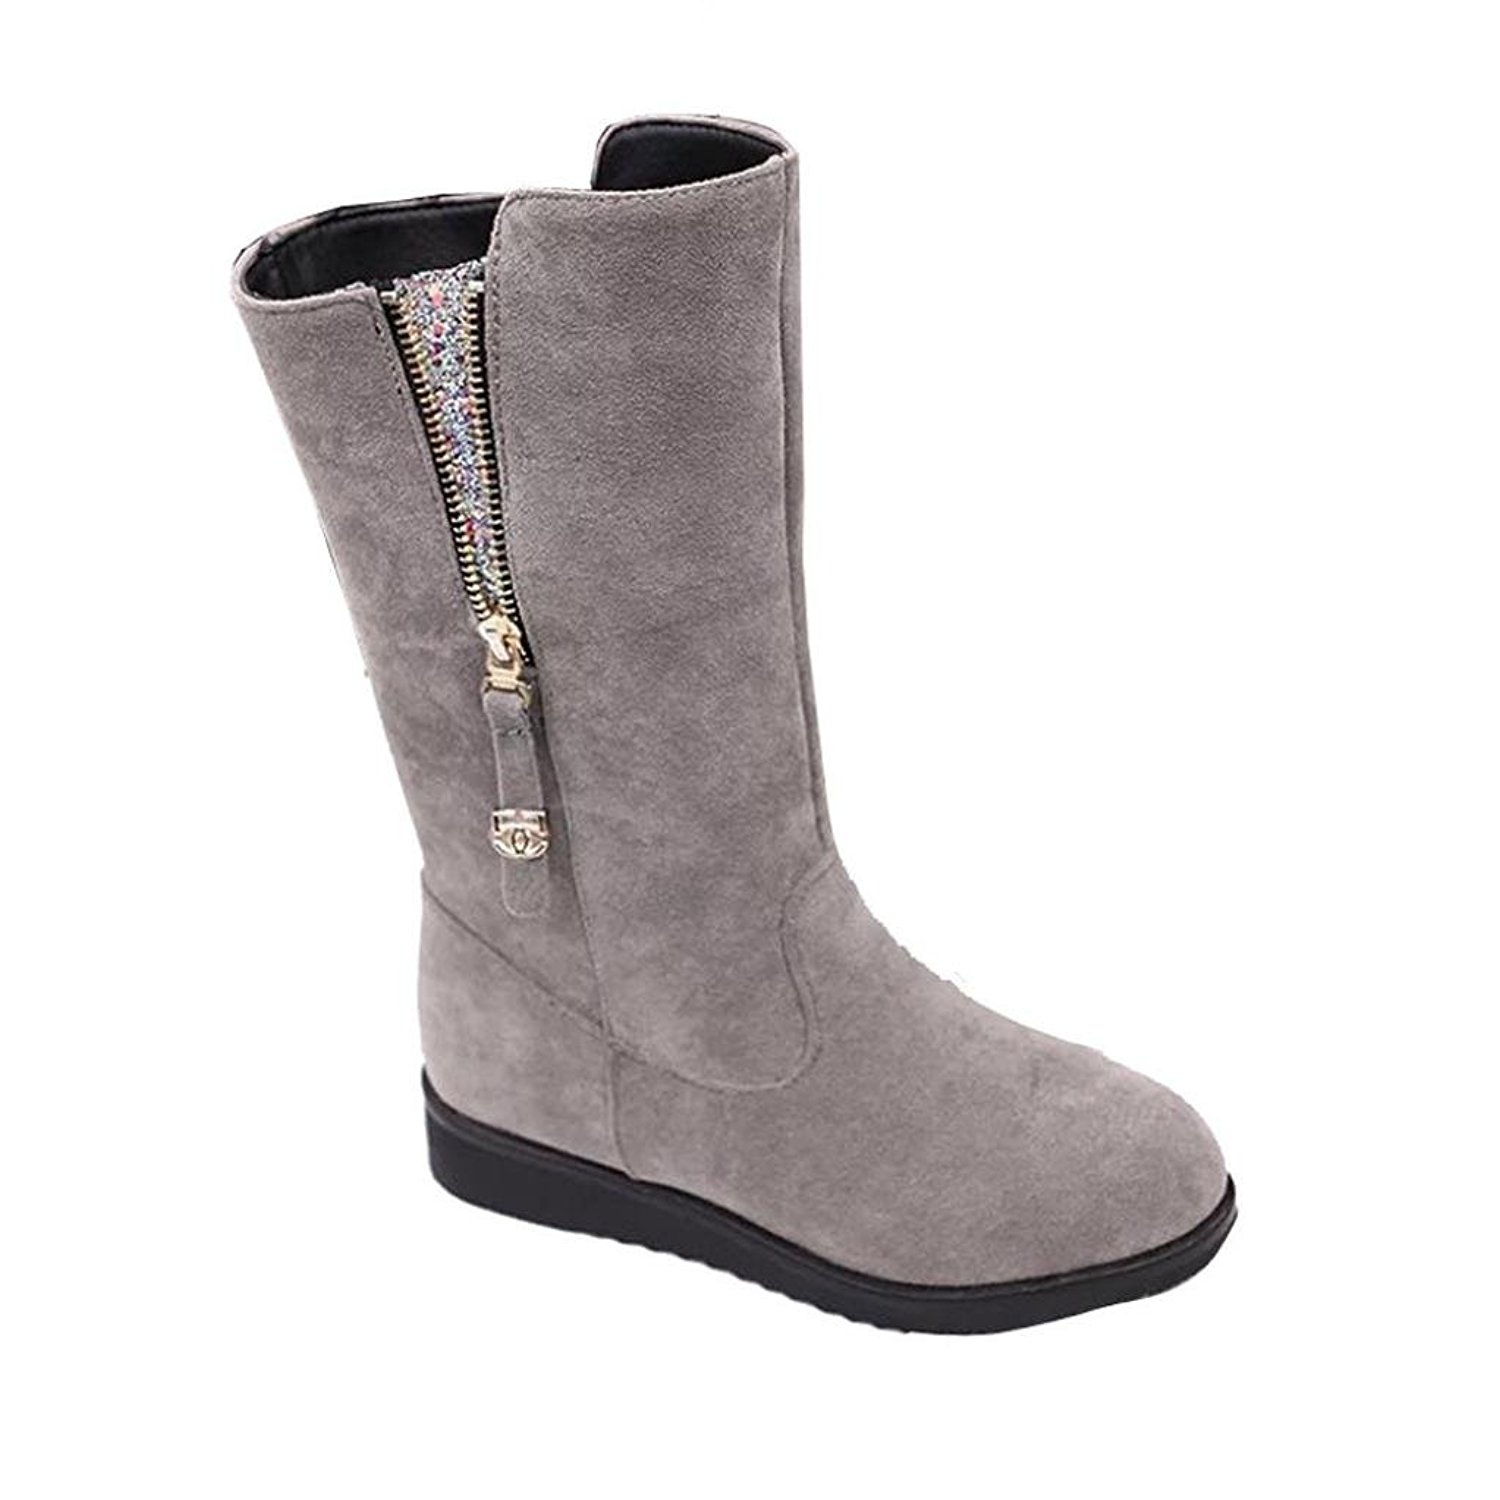 DEESEE(TM) Ladies Women Boots Flat Winter Warm Shoes Short Snow Boots (US 7, Gray)